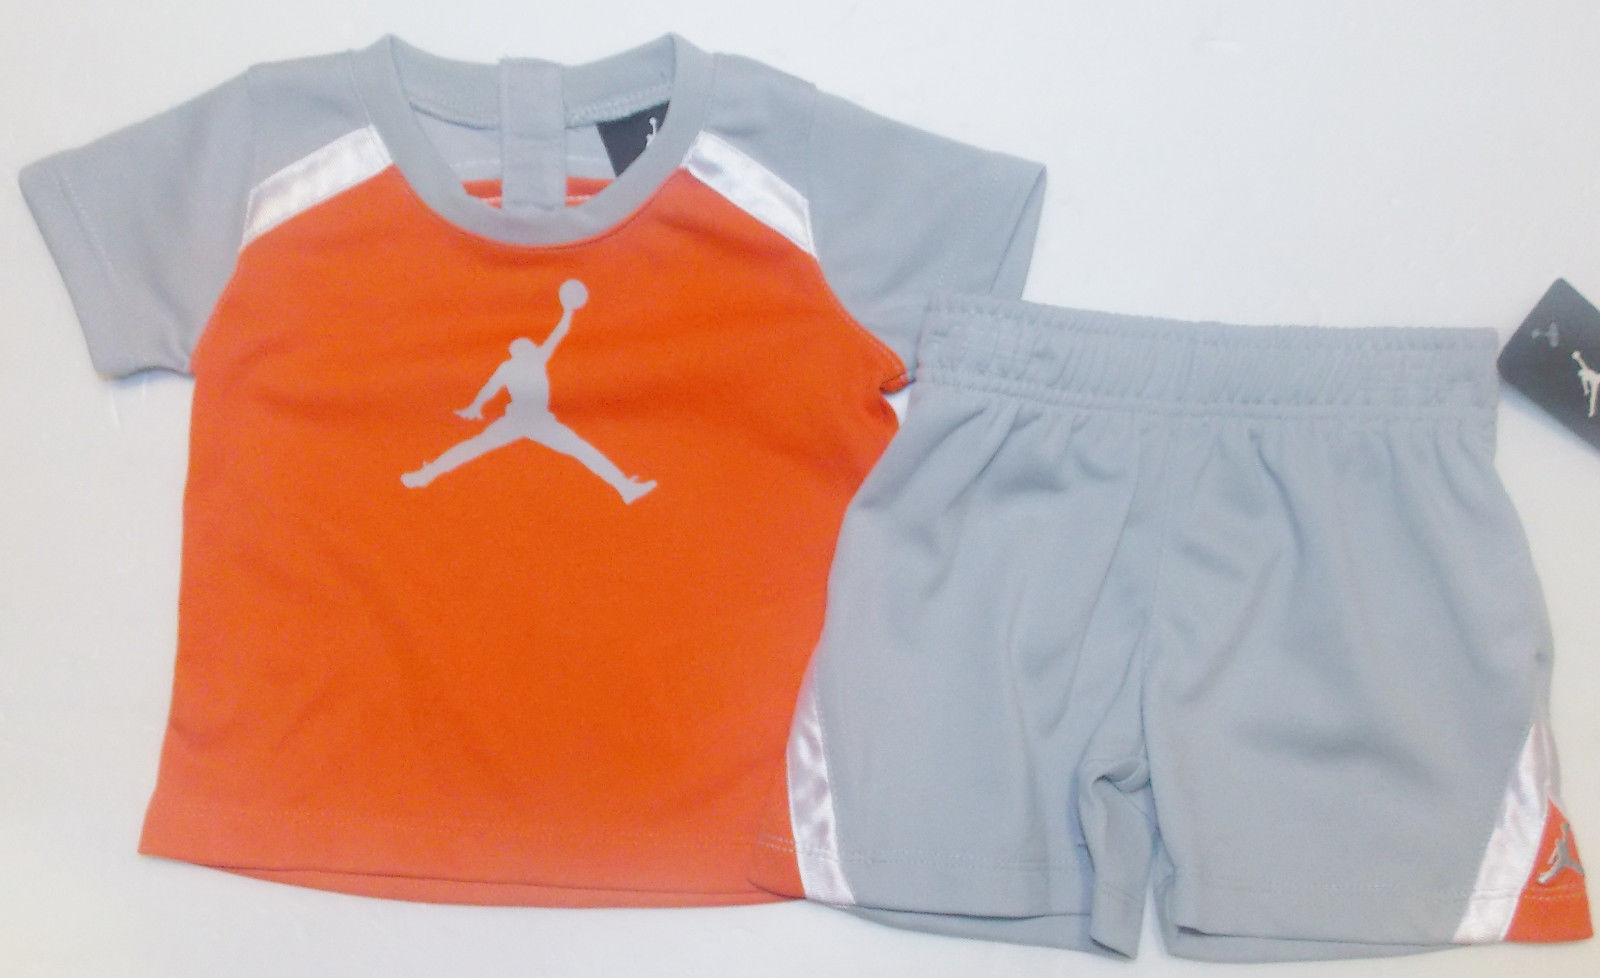 36c787981dc Air Jordan Infant Toddler Boys 2pc Shorts Outfit 2 Choices Sizes 6-9M or 3T